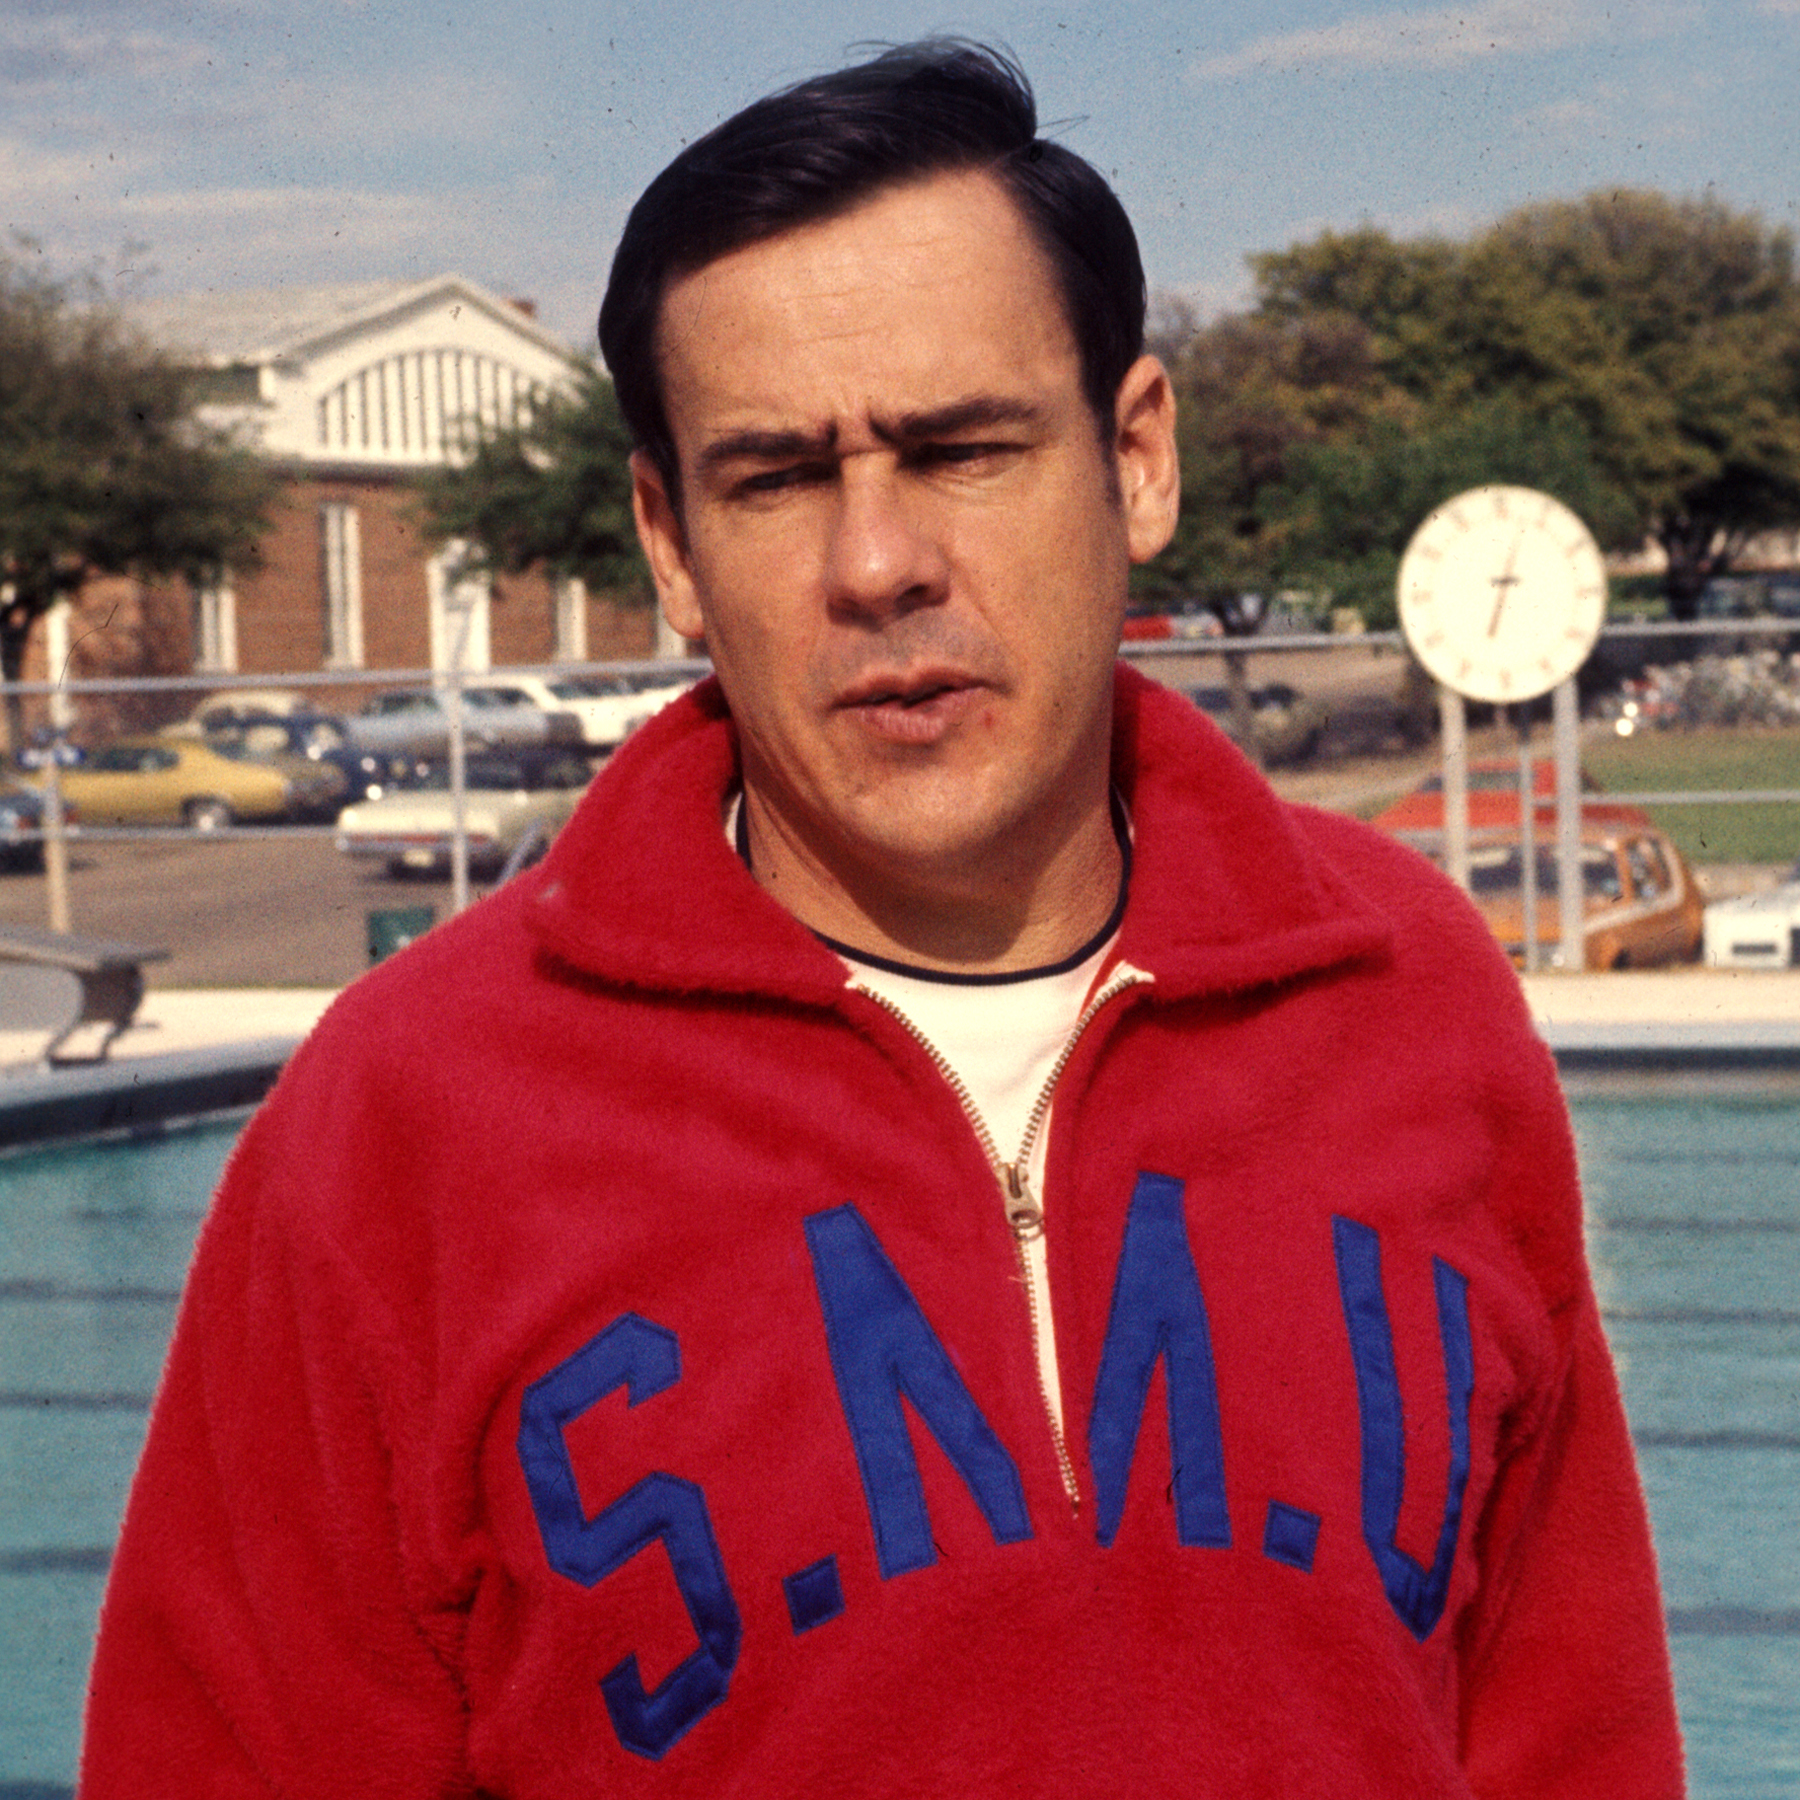 SMU swimming coach George McMillion